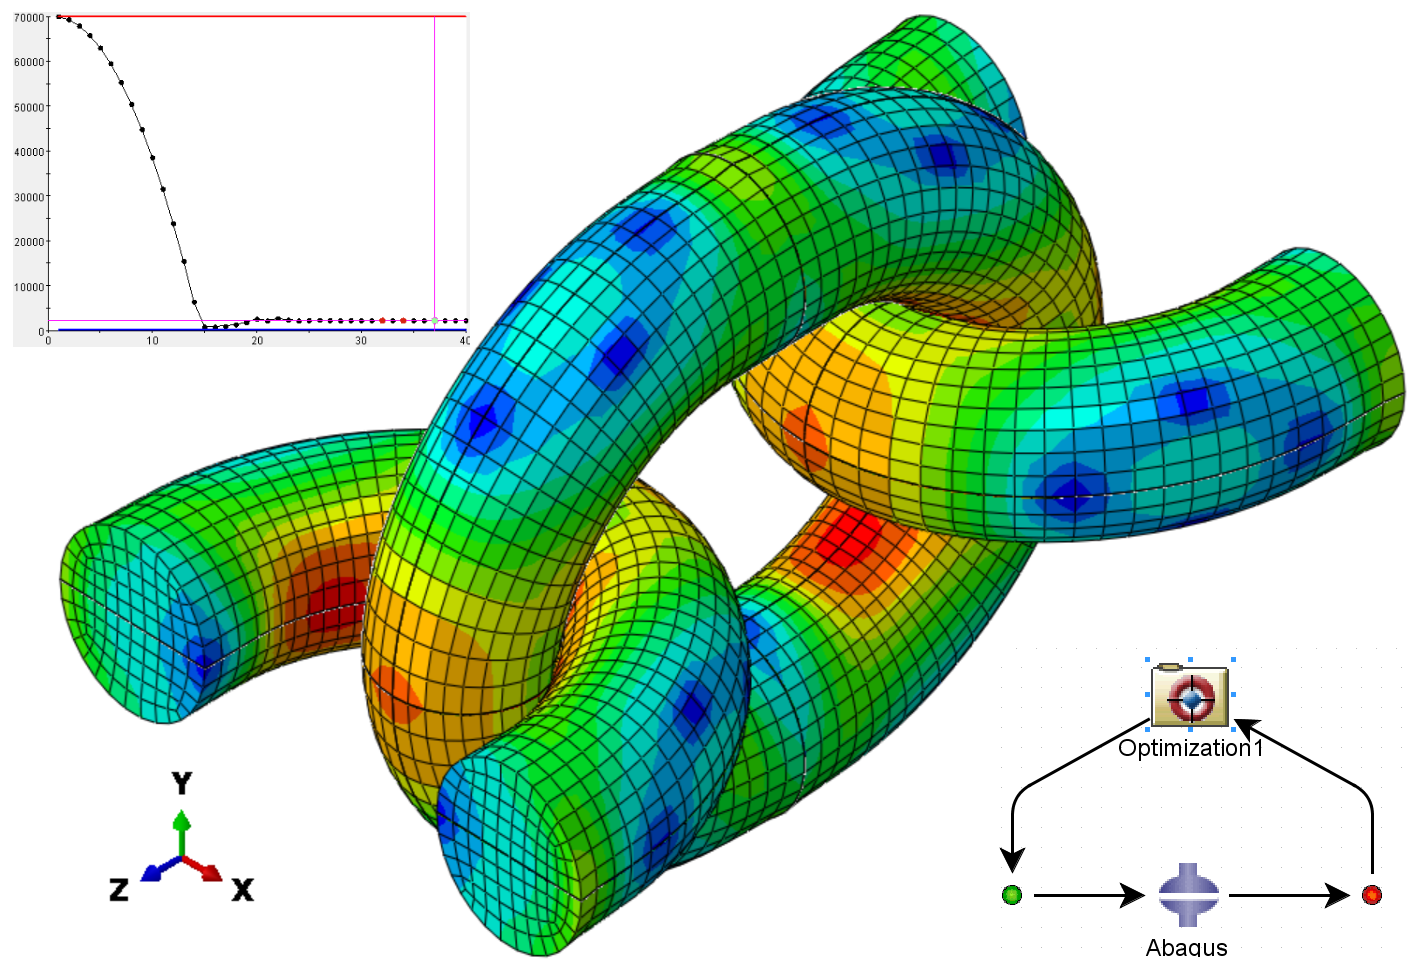 A Parametric Study on Outer Layer of Helmet using ABAQUS